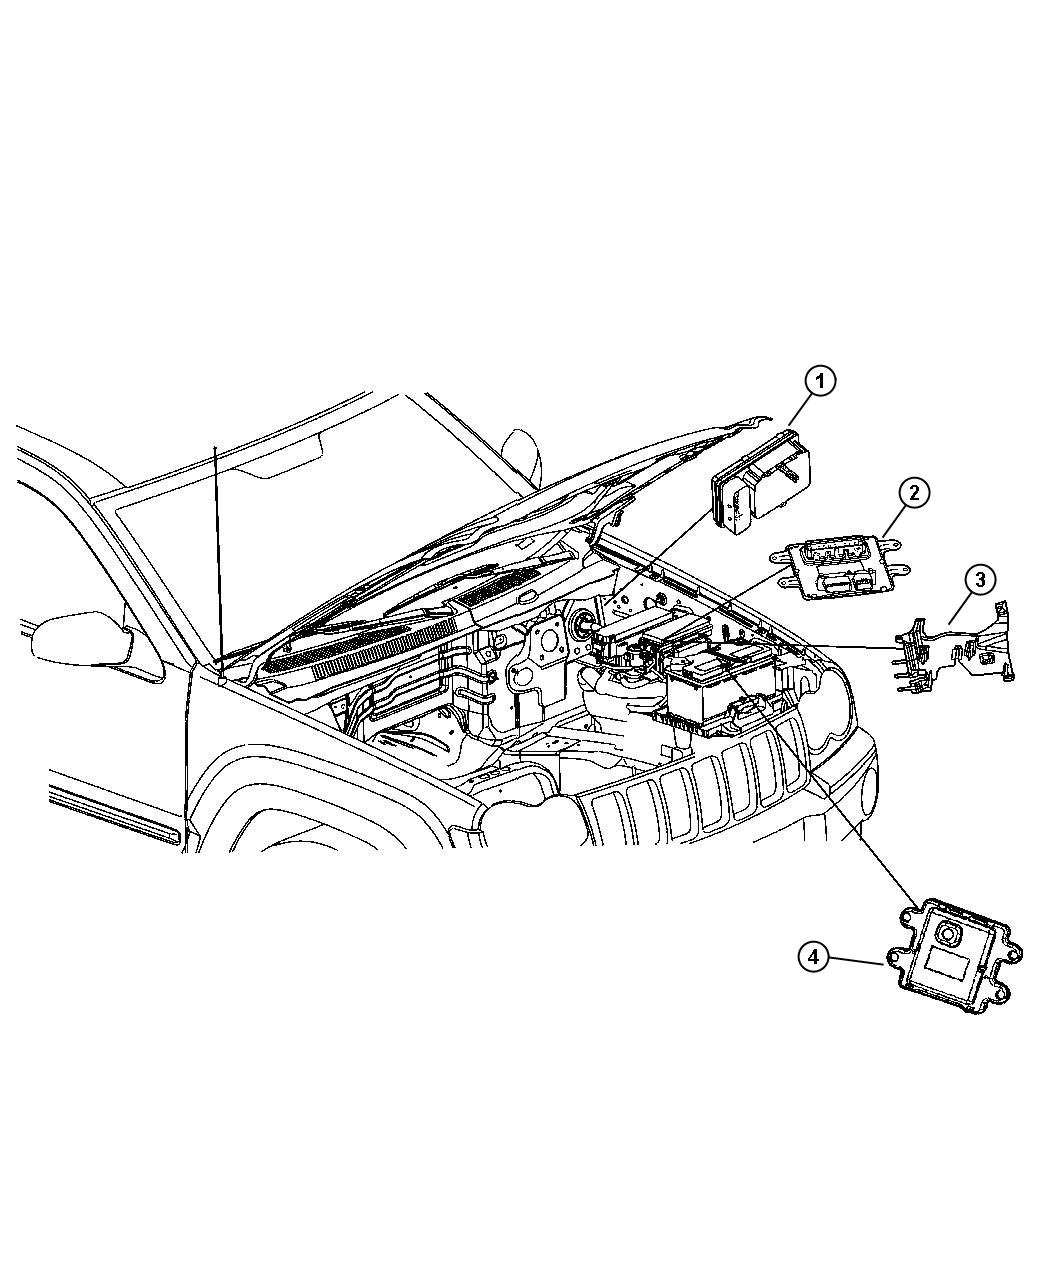 jeep grand cherokee module  front control  after 01  09  06  up to 01  09  06